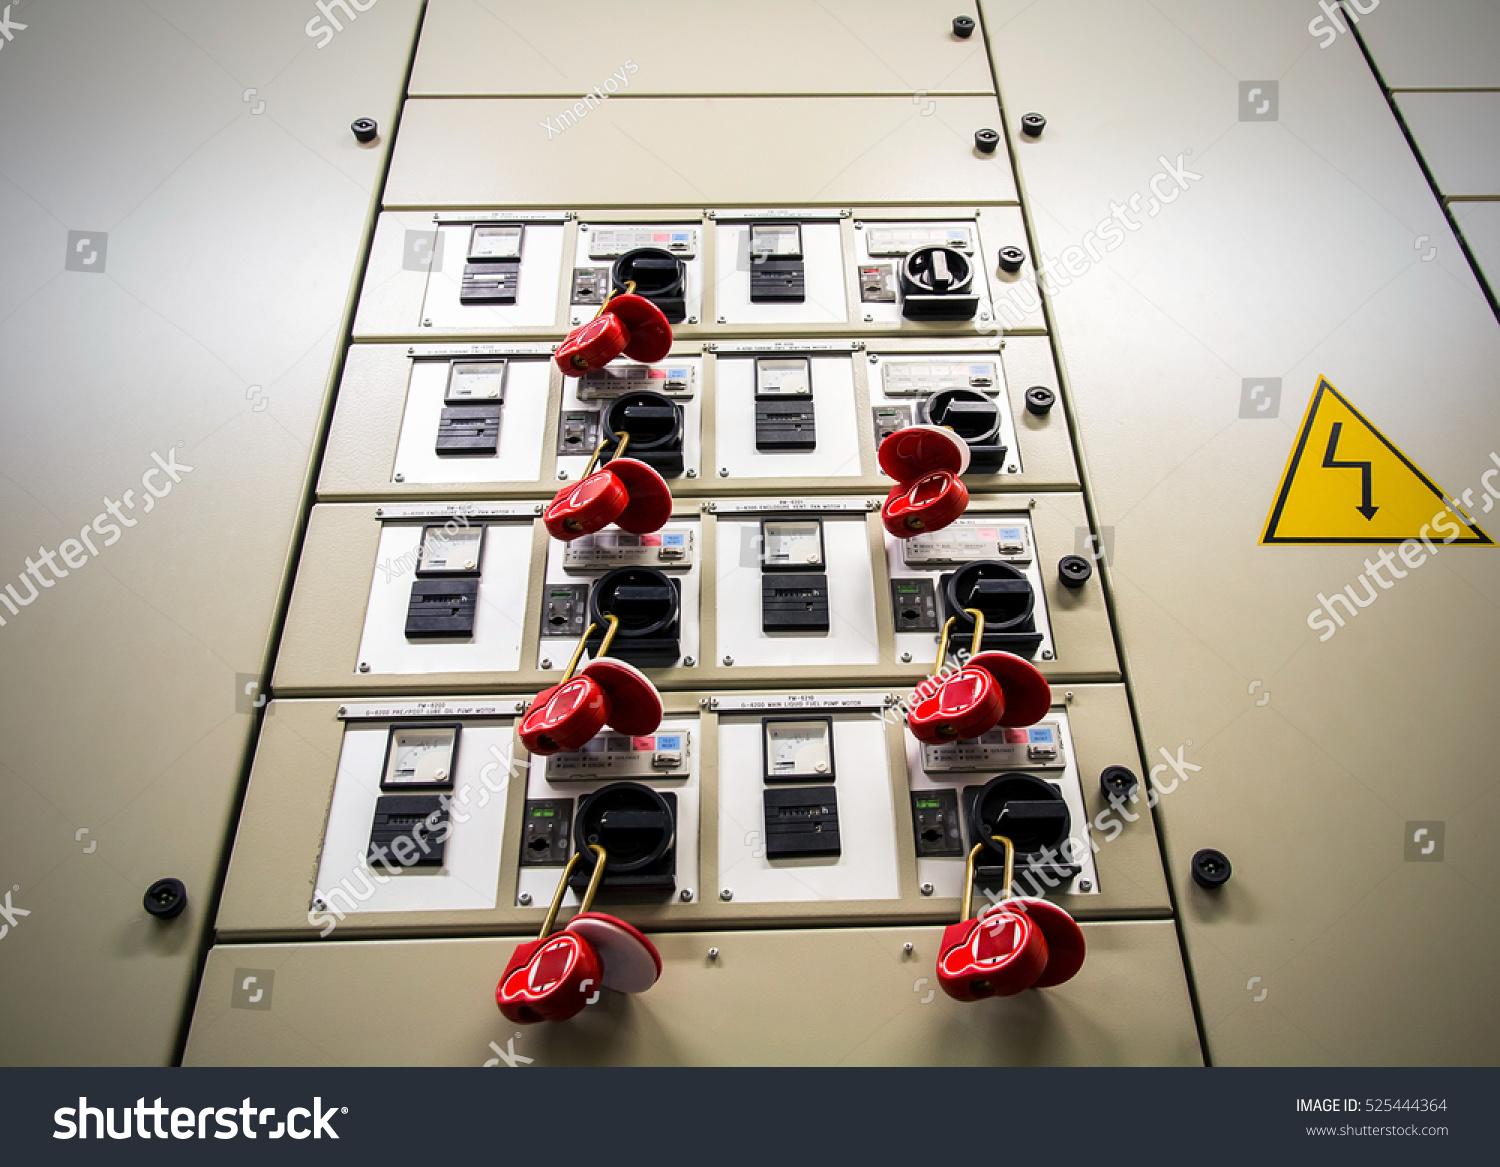 Excellent Bdneww Thin Gibson Pickup Wiring Colors Rectangular Car Alarm Wiring 2 Wire Car Alarm Young Super 5 Way Switch GreenRev Search Electrical Breaker Box Locked Out Service Stock Photo 525444364 ..